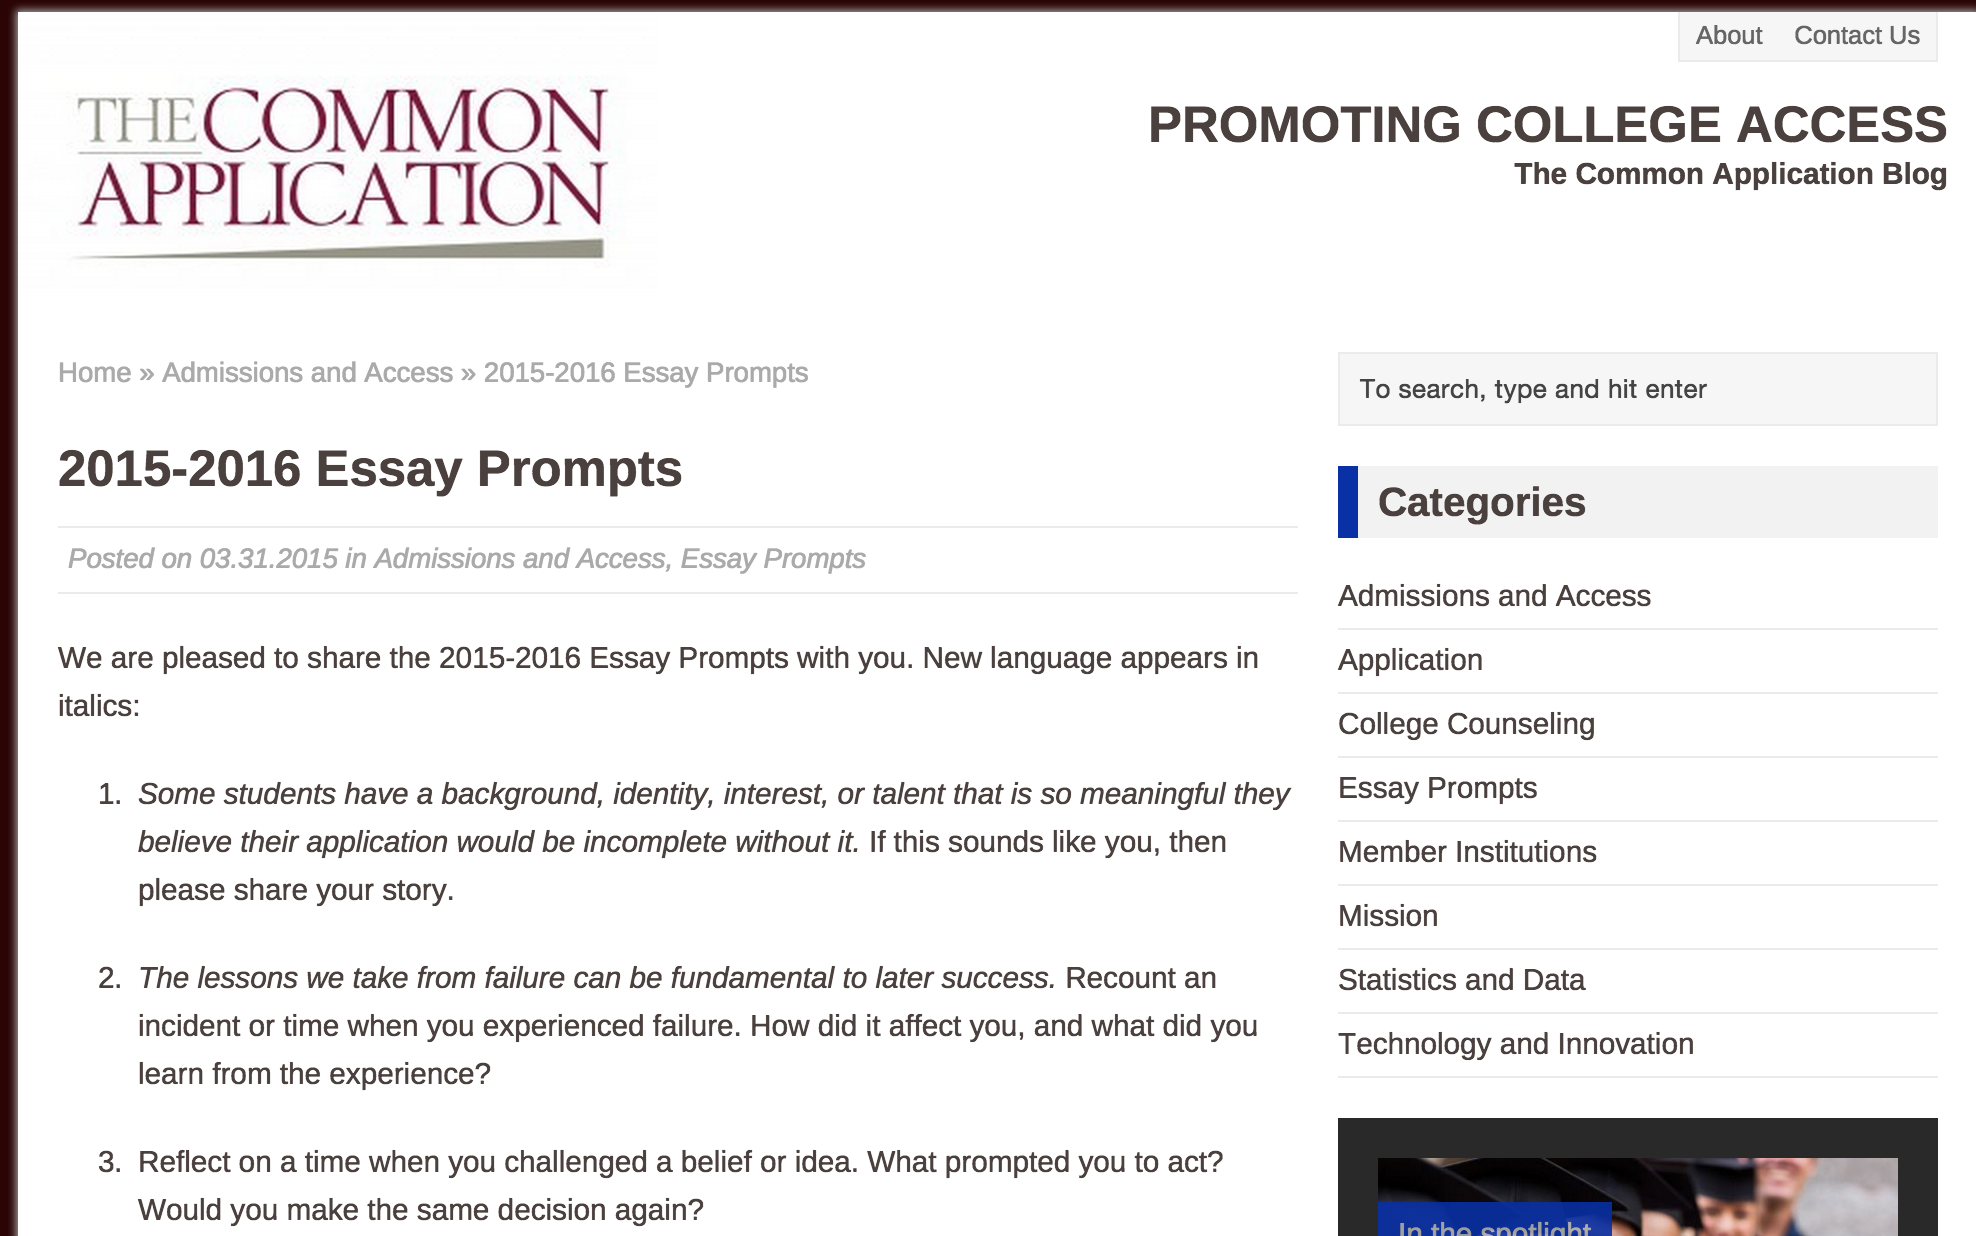 007 Essay Example Common Application Screen Shot At Fearsome App 5 Tips Examples 2017 Word Limit 2018-19 Full